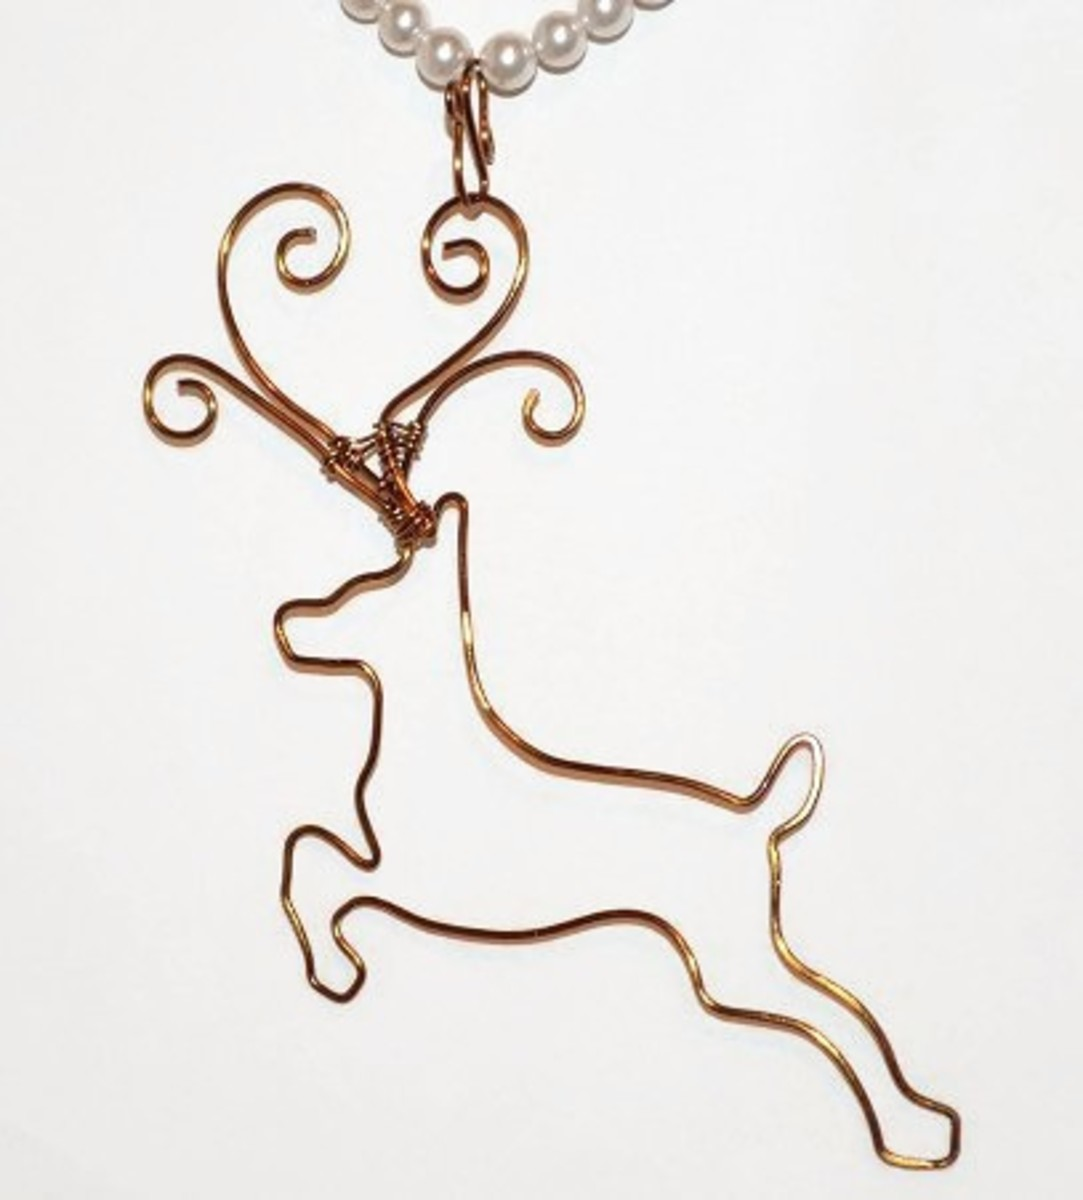 Free tutorial, learn how to make this wire work prancing reindeer pendant or Christmas tree ornament